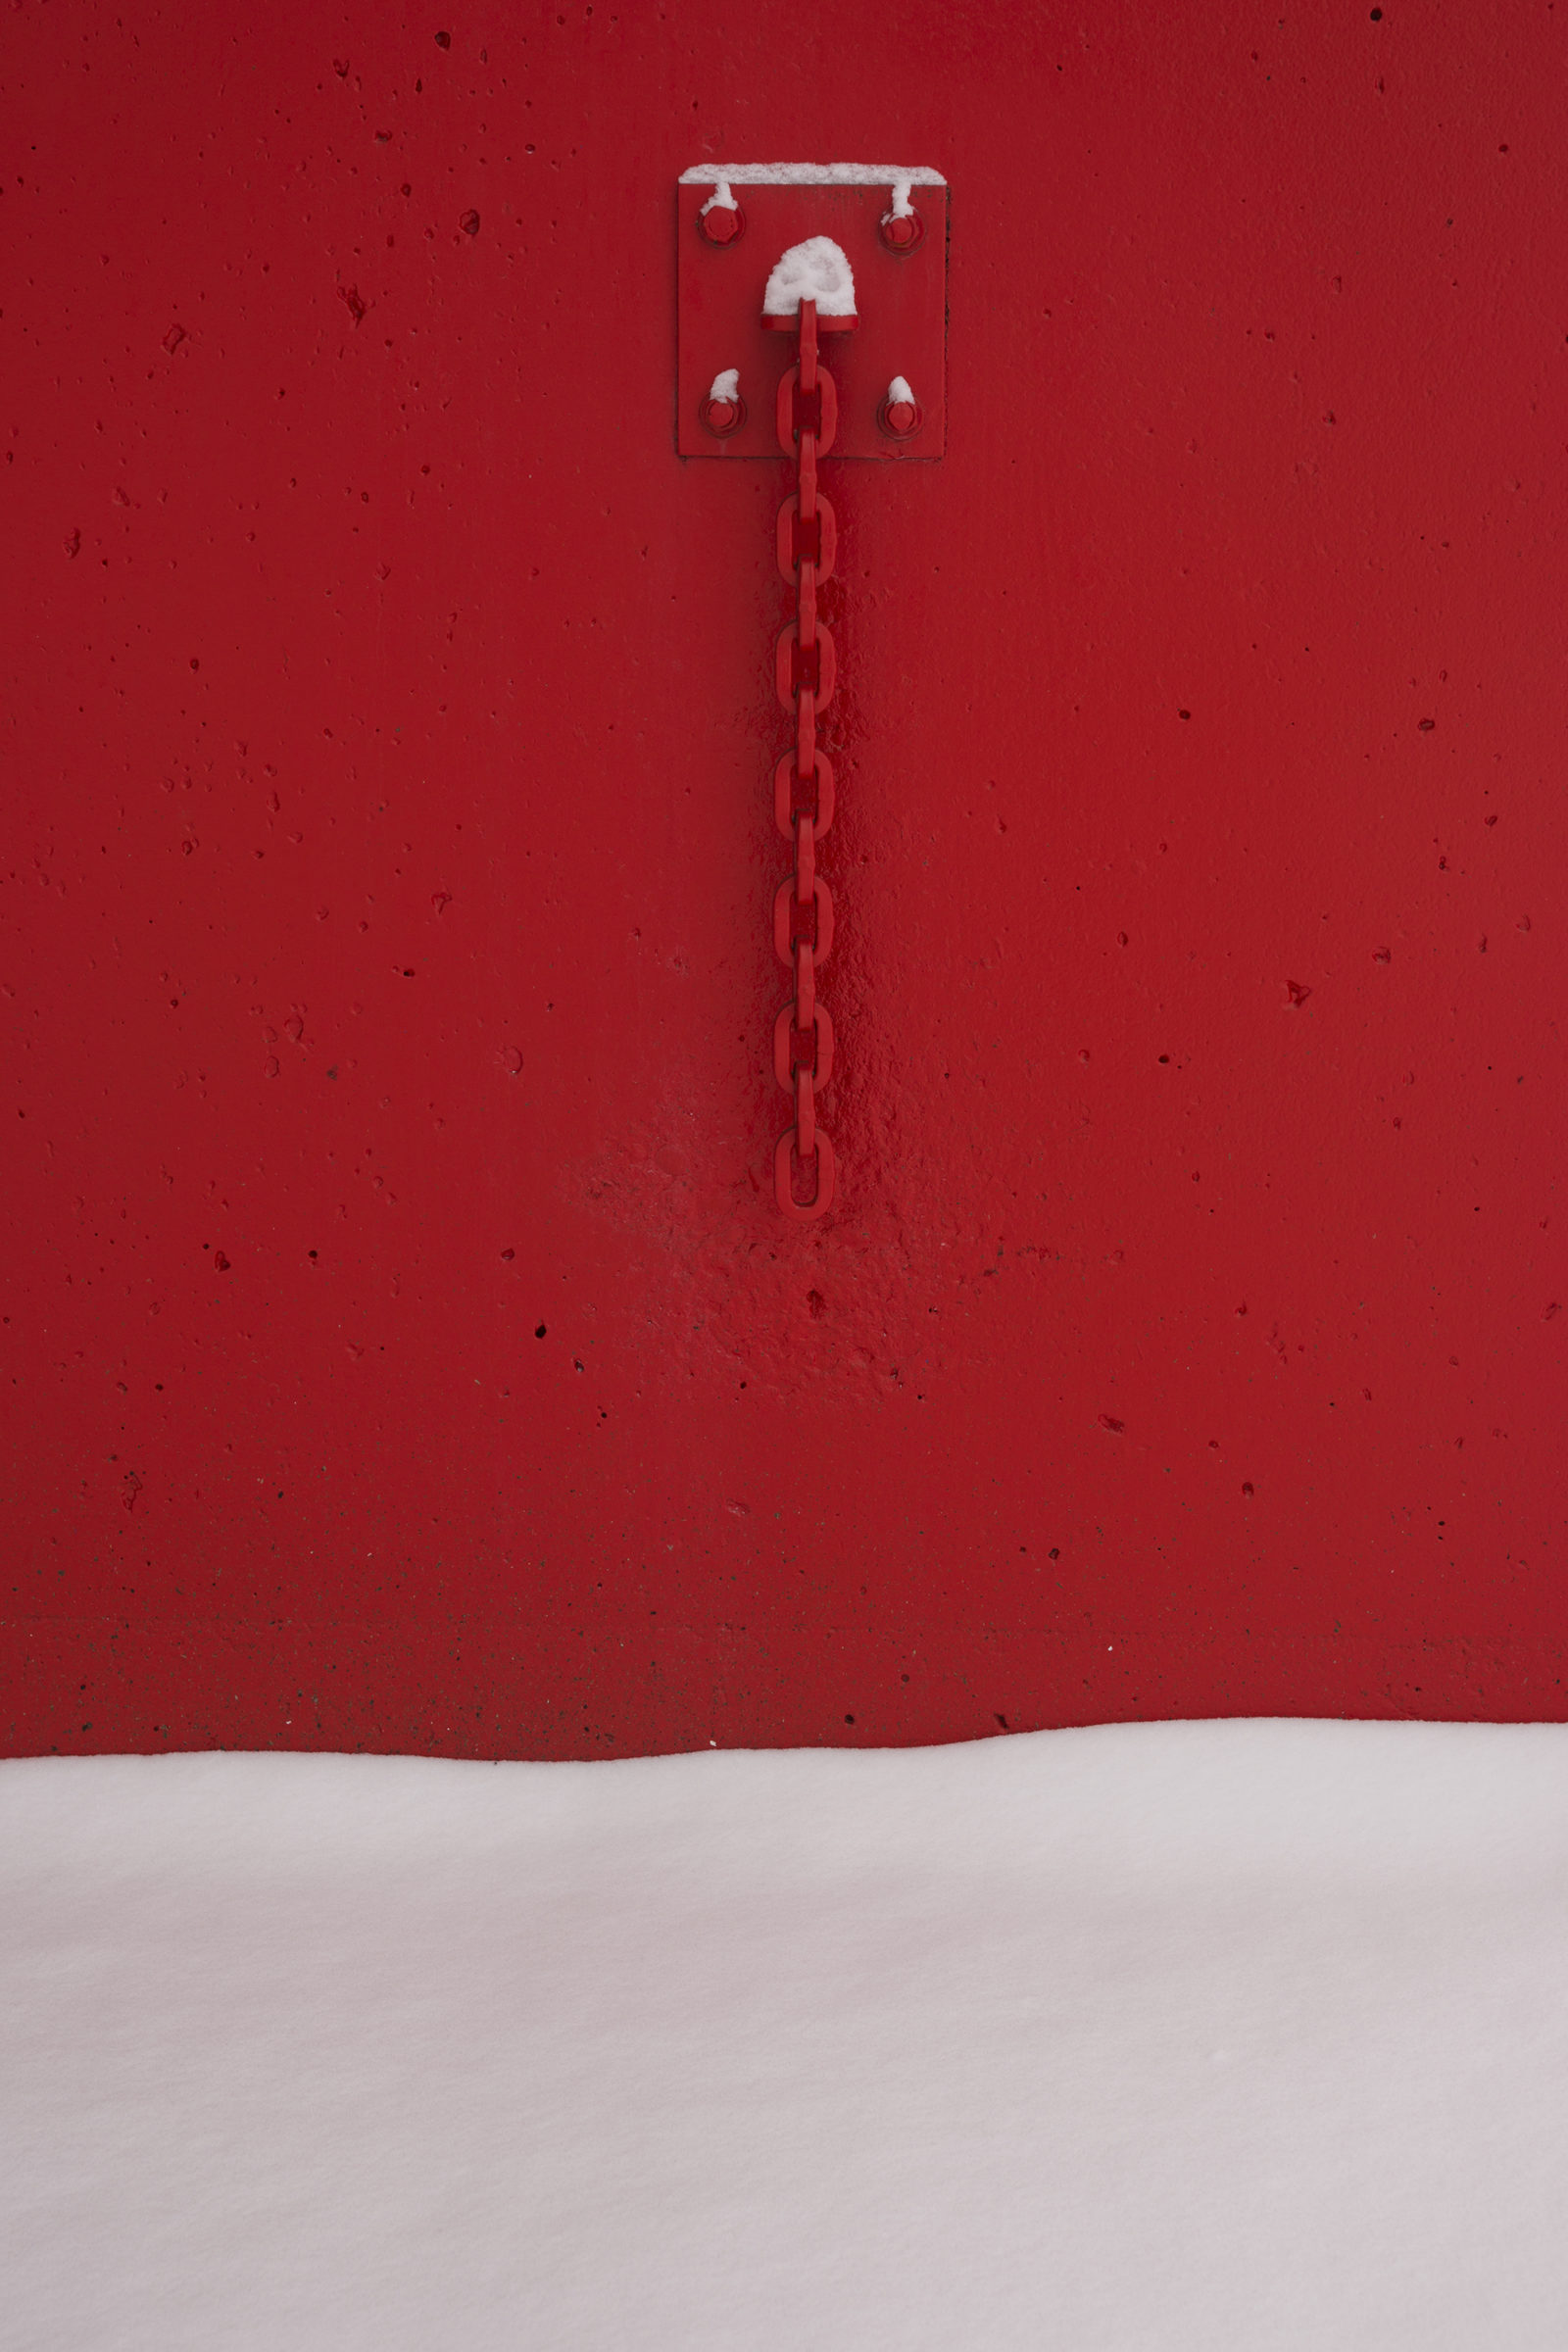 Snow and red Chain